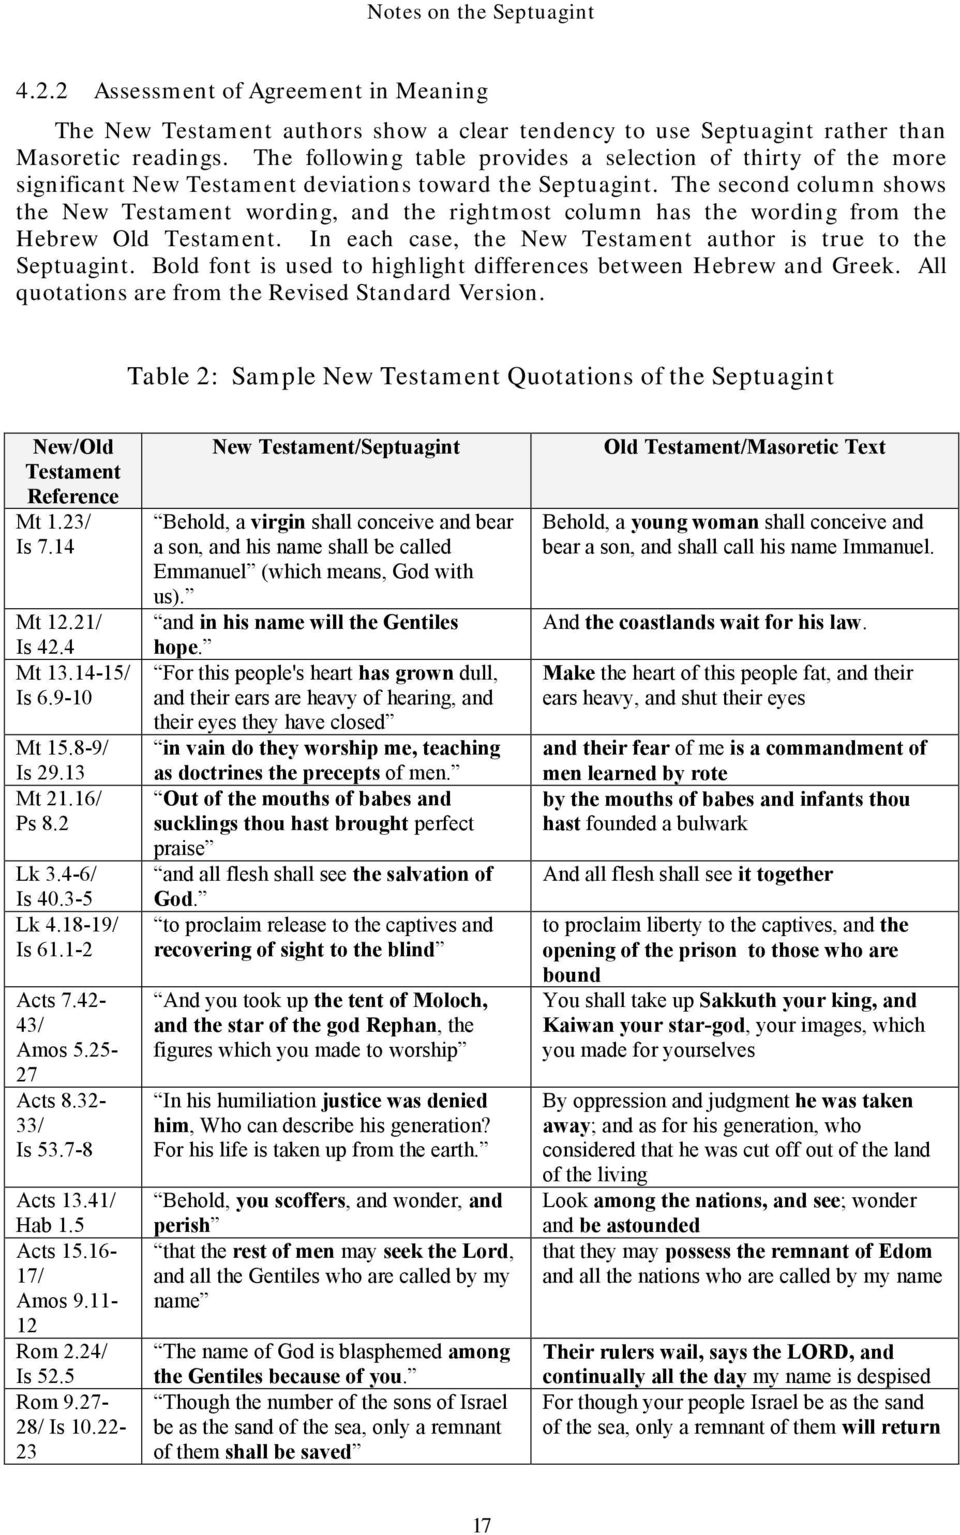 The second column shows the New Testament wording, and the rightmost column has the wording from the Hebrew Old Testament. In each case, the New Testament author is true to the Septuagint.